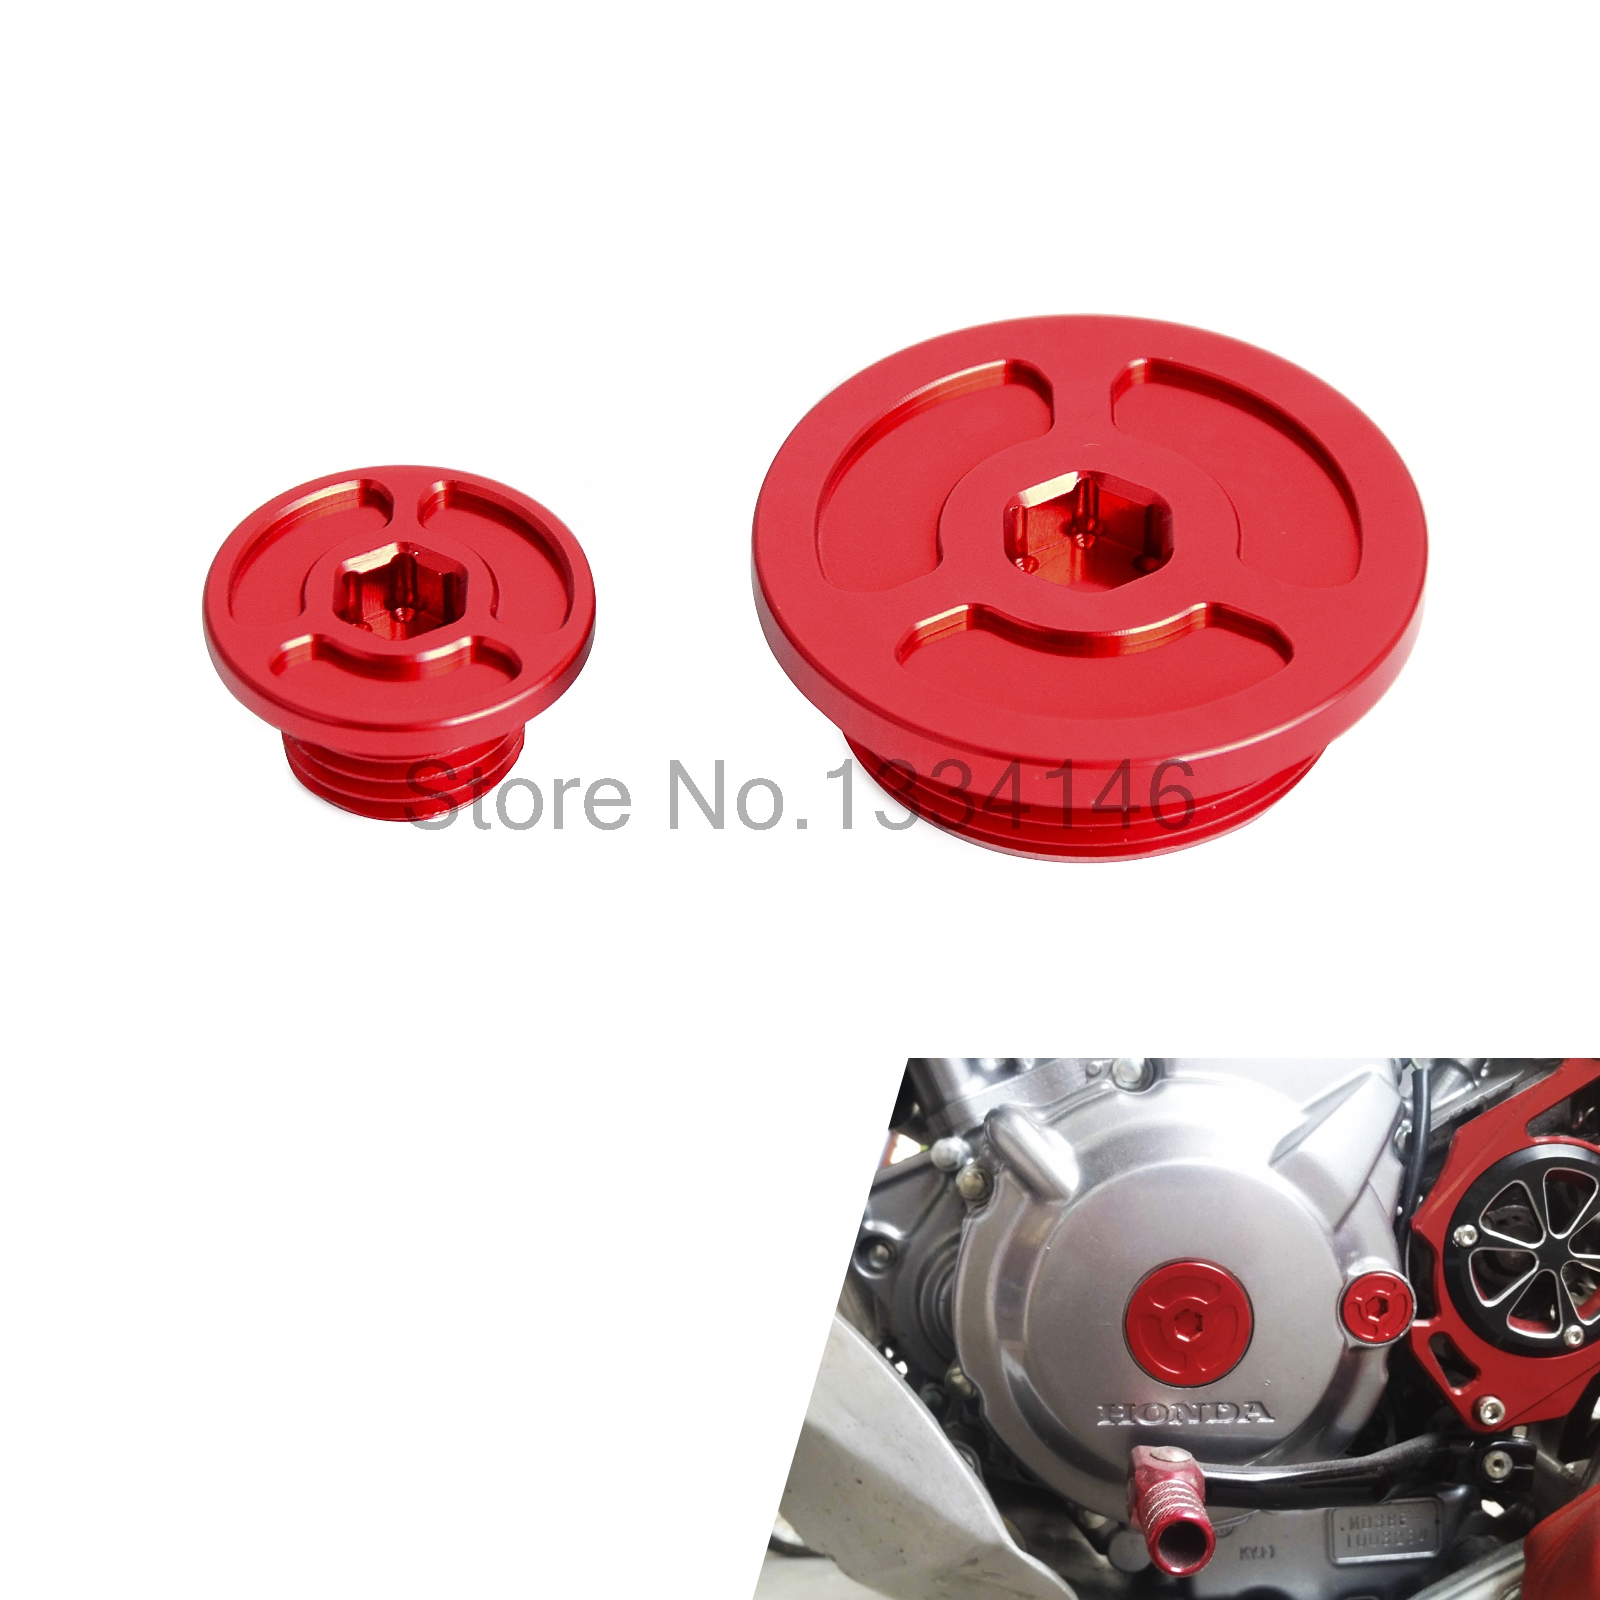 Billet Engine Timing Plugs Engine Cover Oil Filter Cap Cover For Honda CRF250L/M CRF250L CRF250M CRF 250L/M 2012 2013 2014 2015 motorcycle engine cover camshaft plug crankcase cap oil filler cover screw for honda cbr500r cb500f nc700 nc750 2013 2014